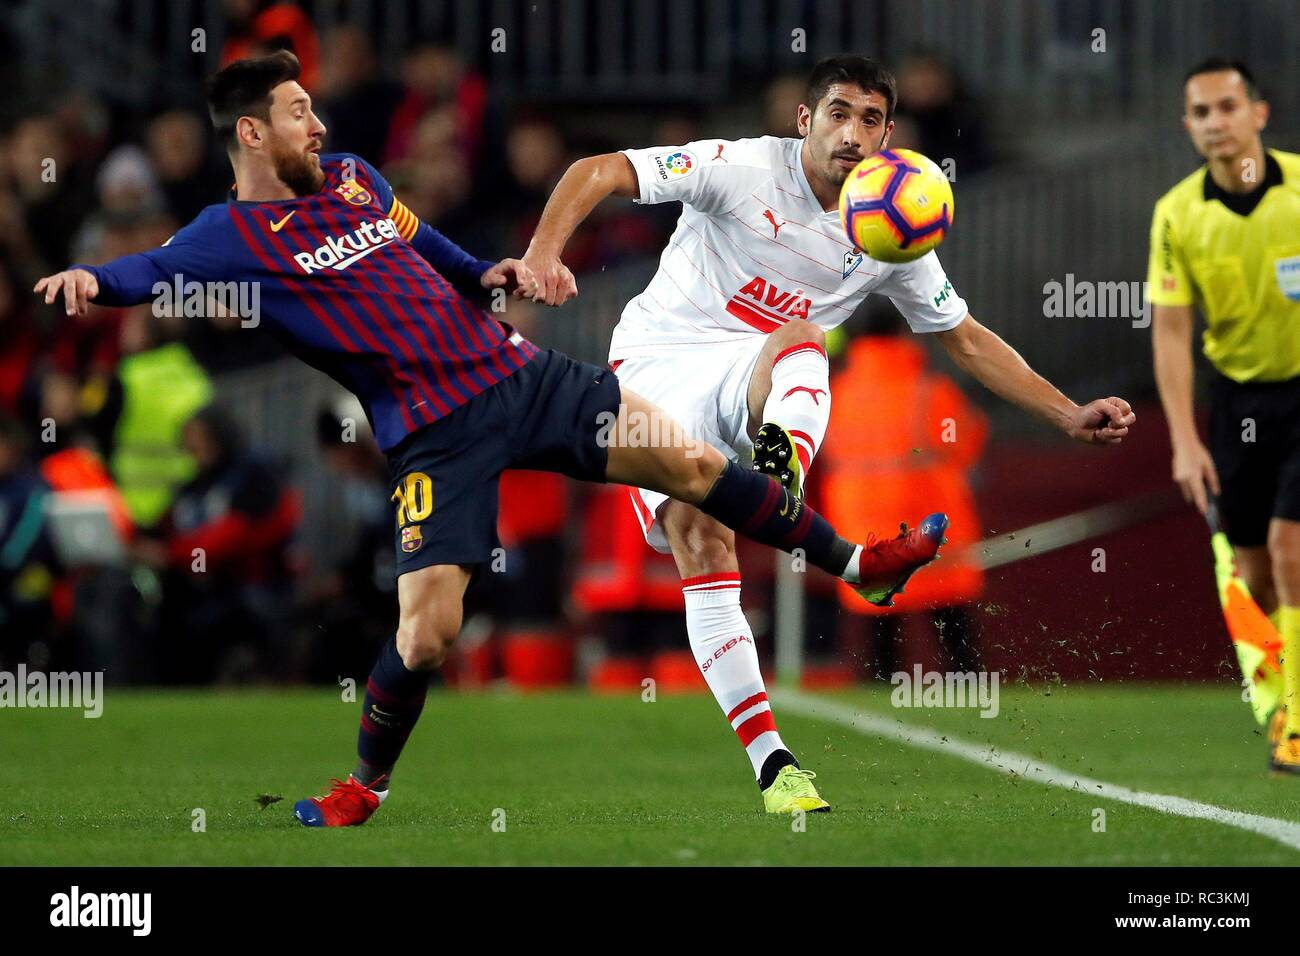 6535c555297 Messi Stock Photos   Messi Stock Images - Page 2 - Alamy